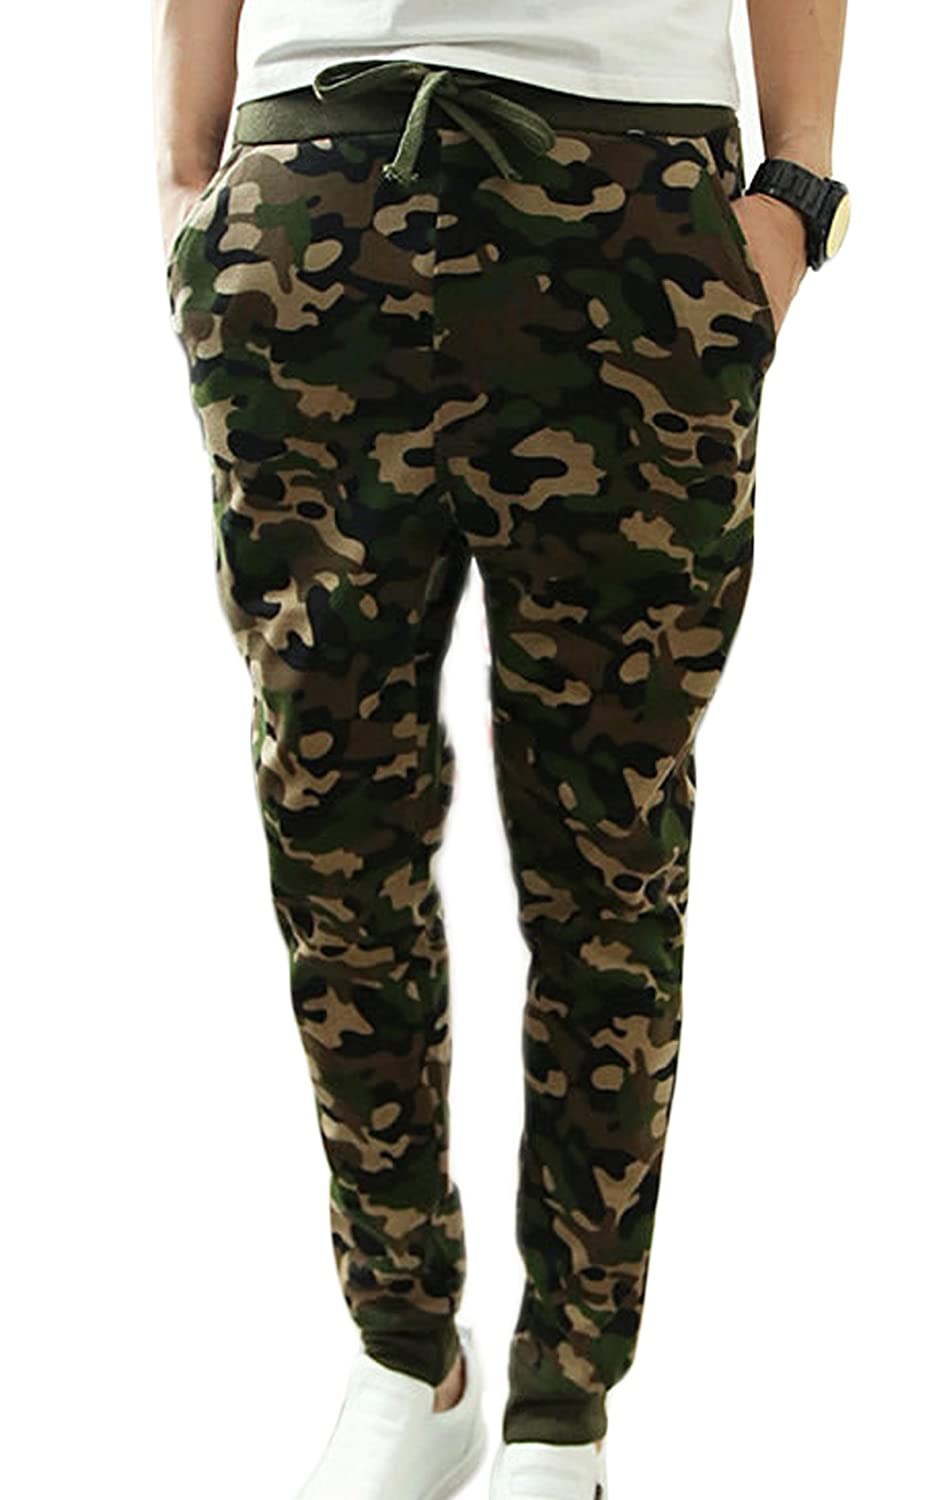 Panegy Men's Camouflage Color Drawstring Waist Jogging Harem Pants Army Green THANKSET